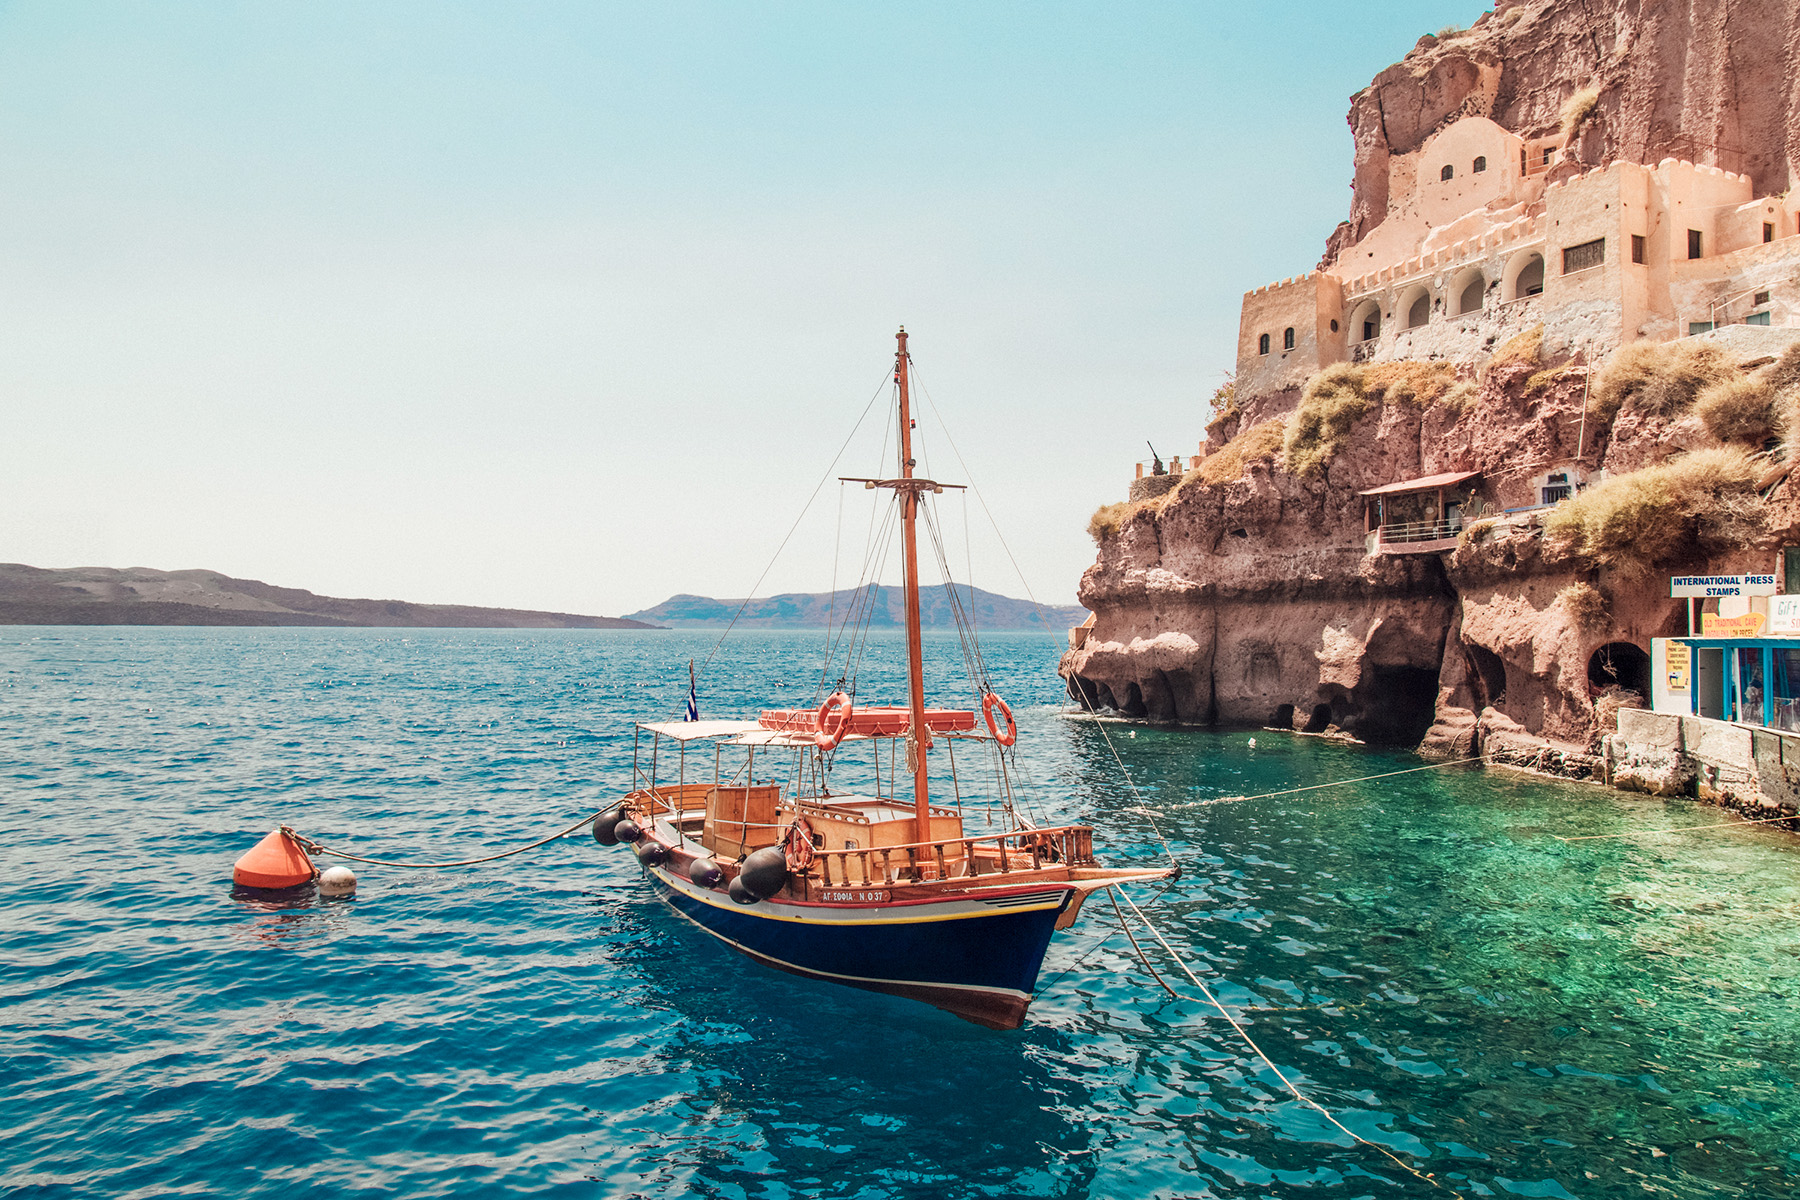 Santorini_June_2016-1_Edit.jpg